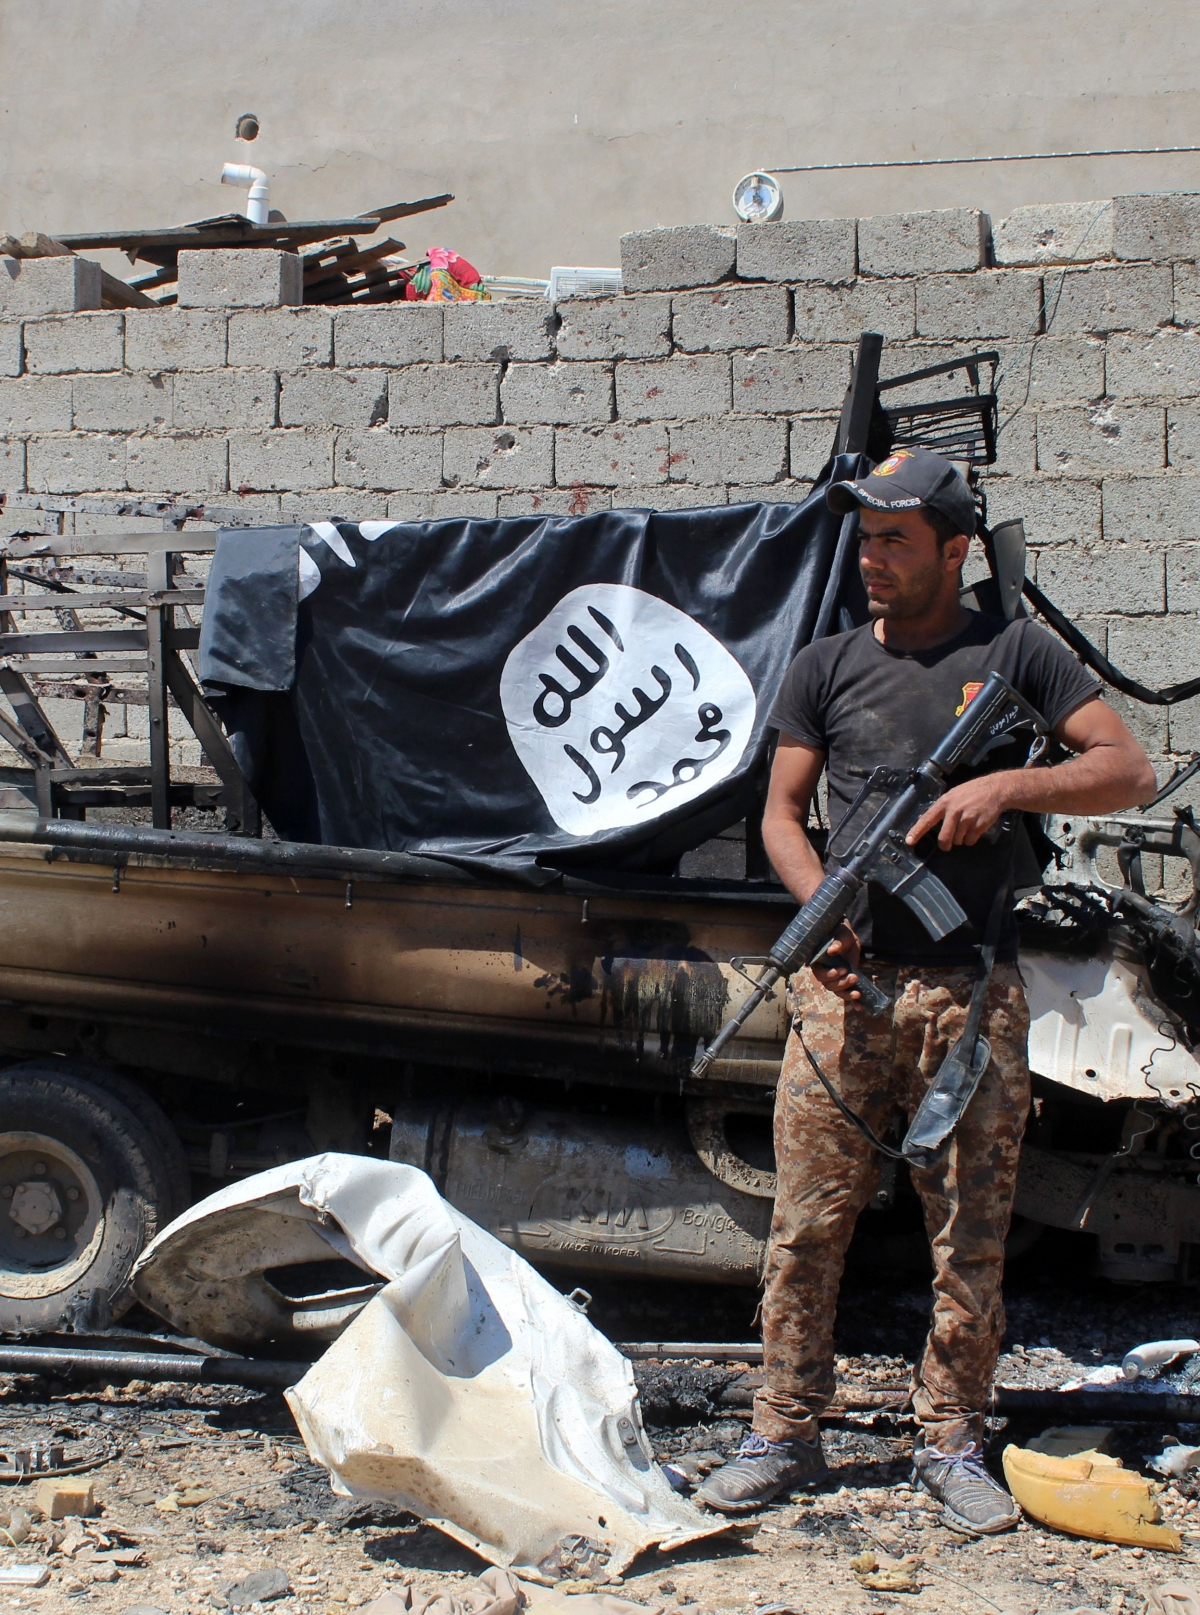 A member of Iraqi government forces inspects a burnt vehicle with on its top a flag of the Islamic State group (IS) after they retook an area from its jihadists on April 2